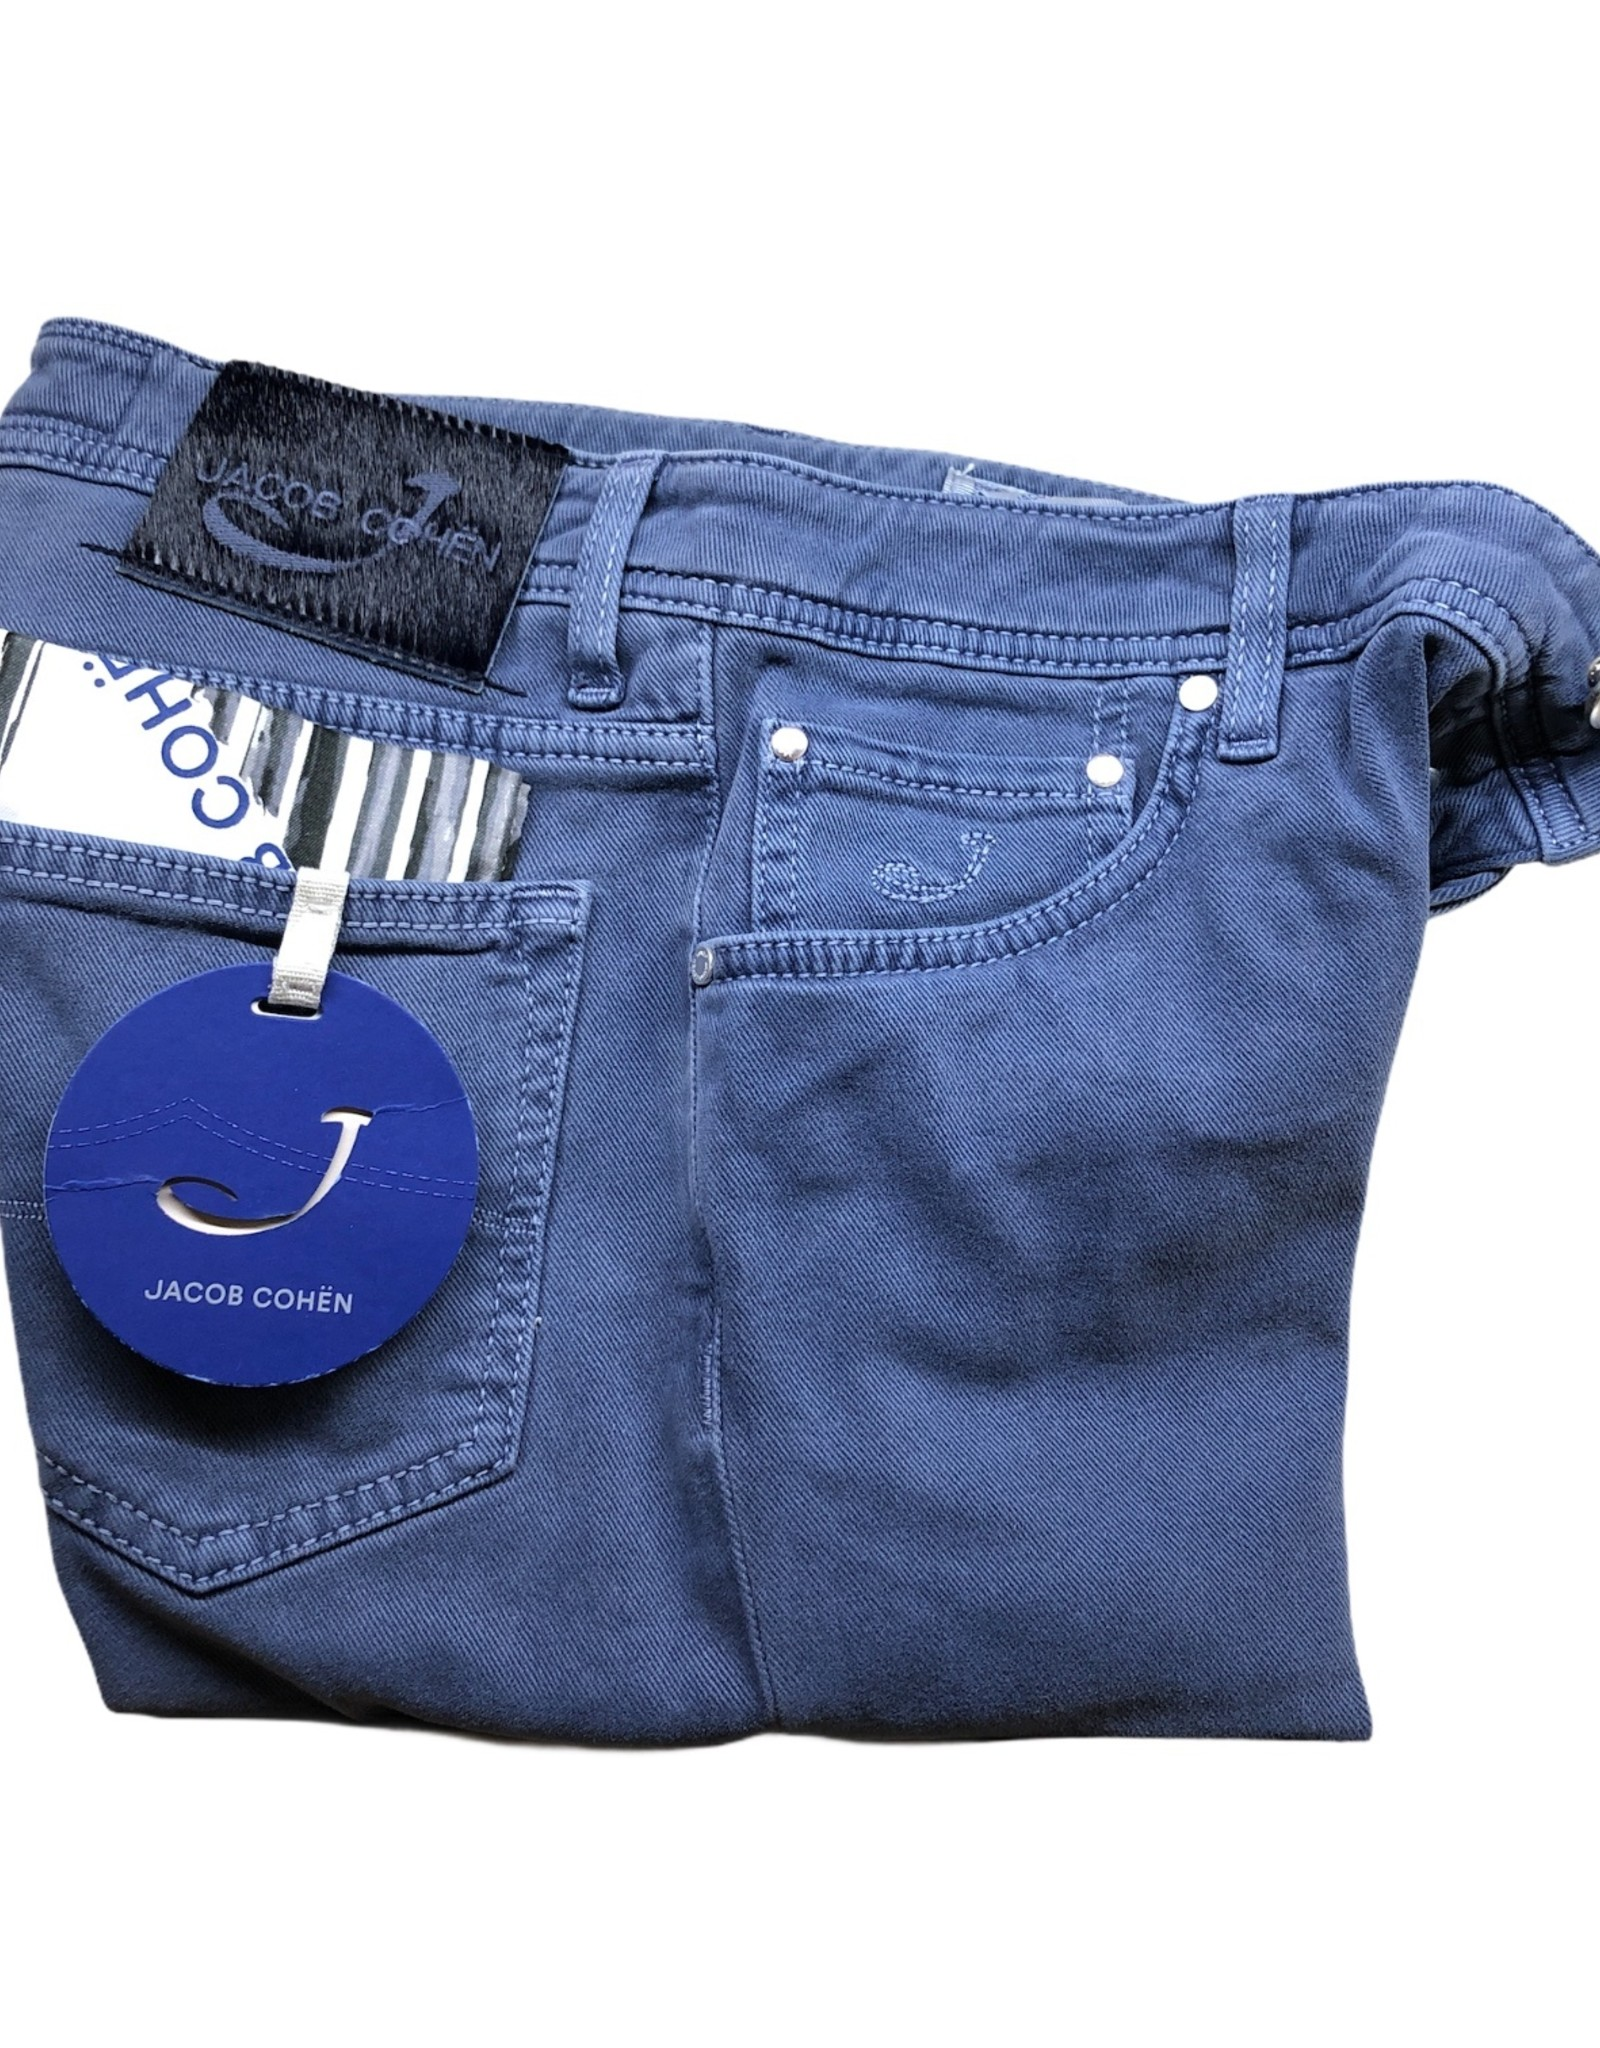 JACOB COHEN JACOB COHEN Jeans J622 SLIM COMF 5406